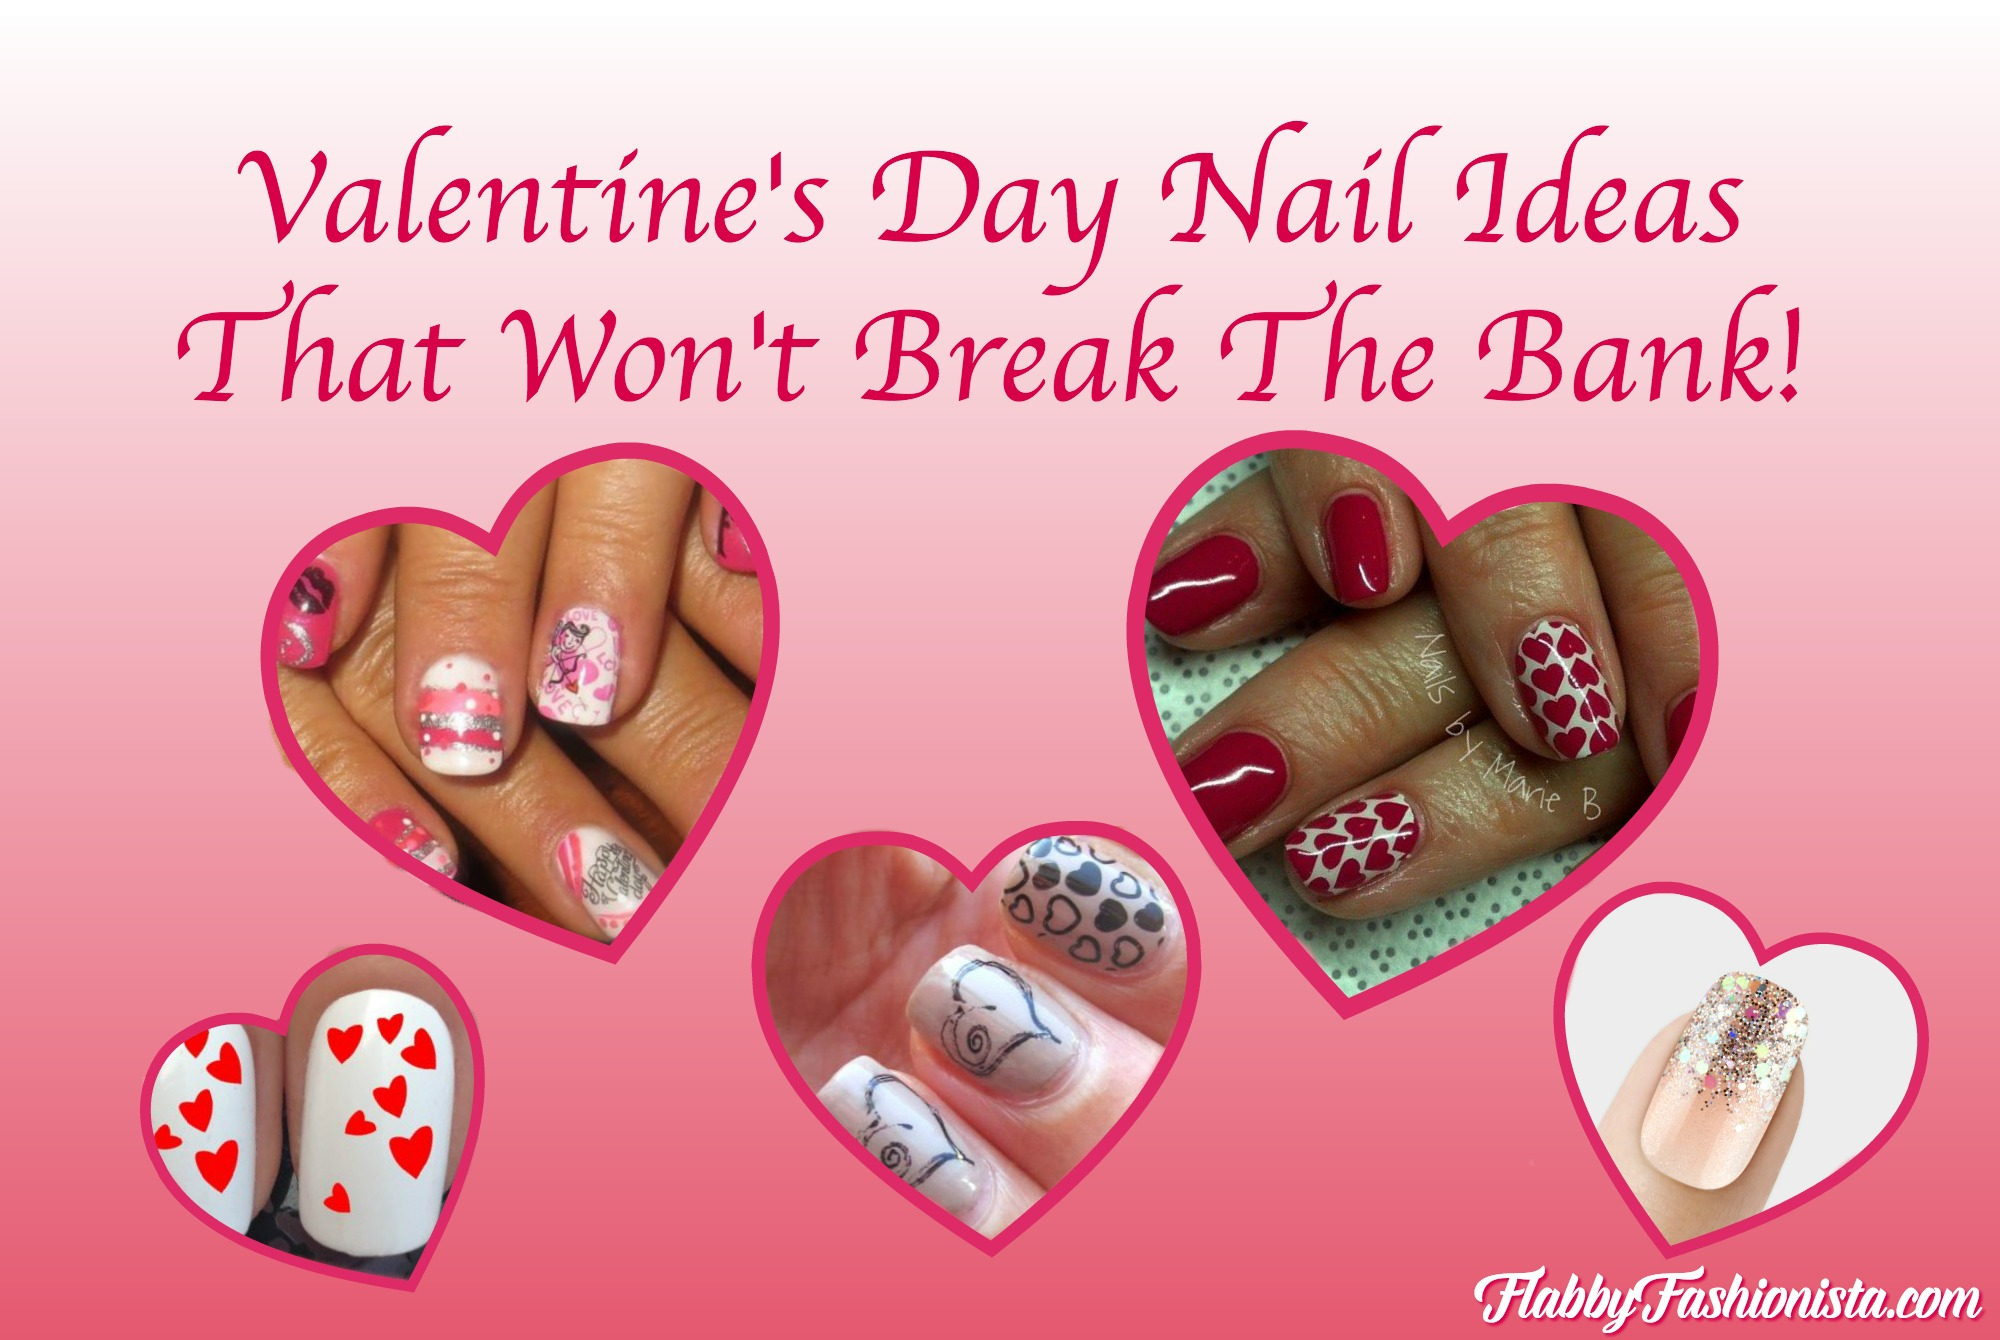 Valentines Day Nail Ideas That Won't Break The Bank